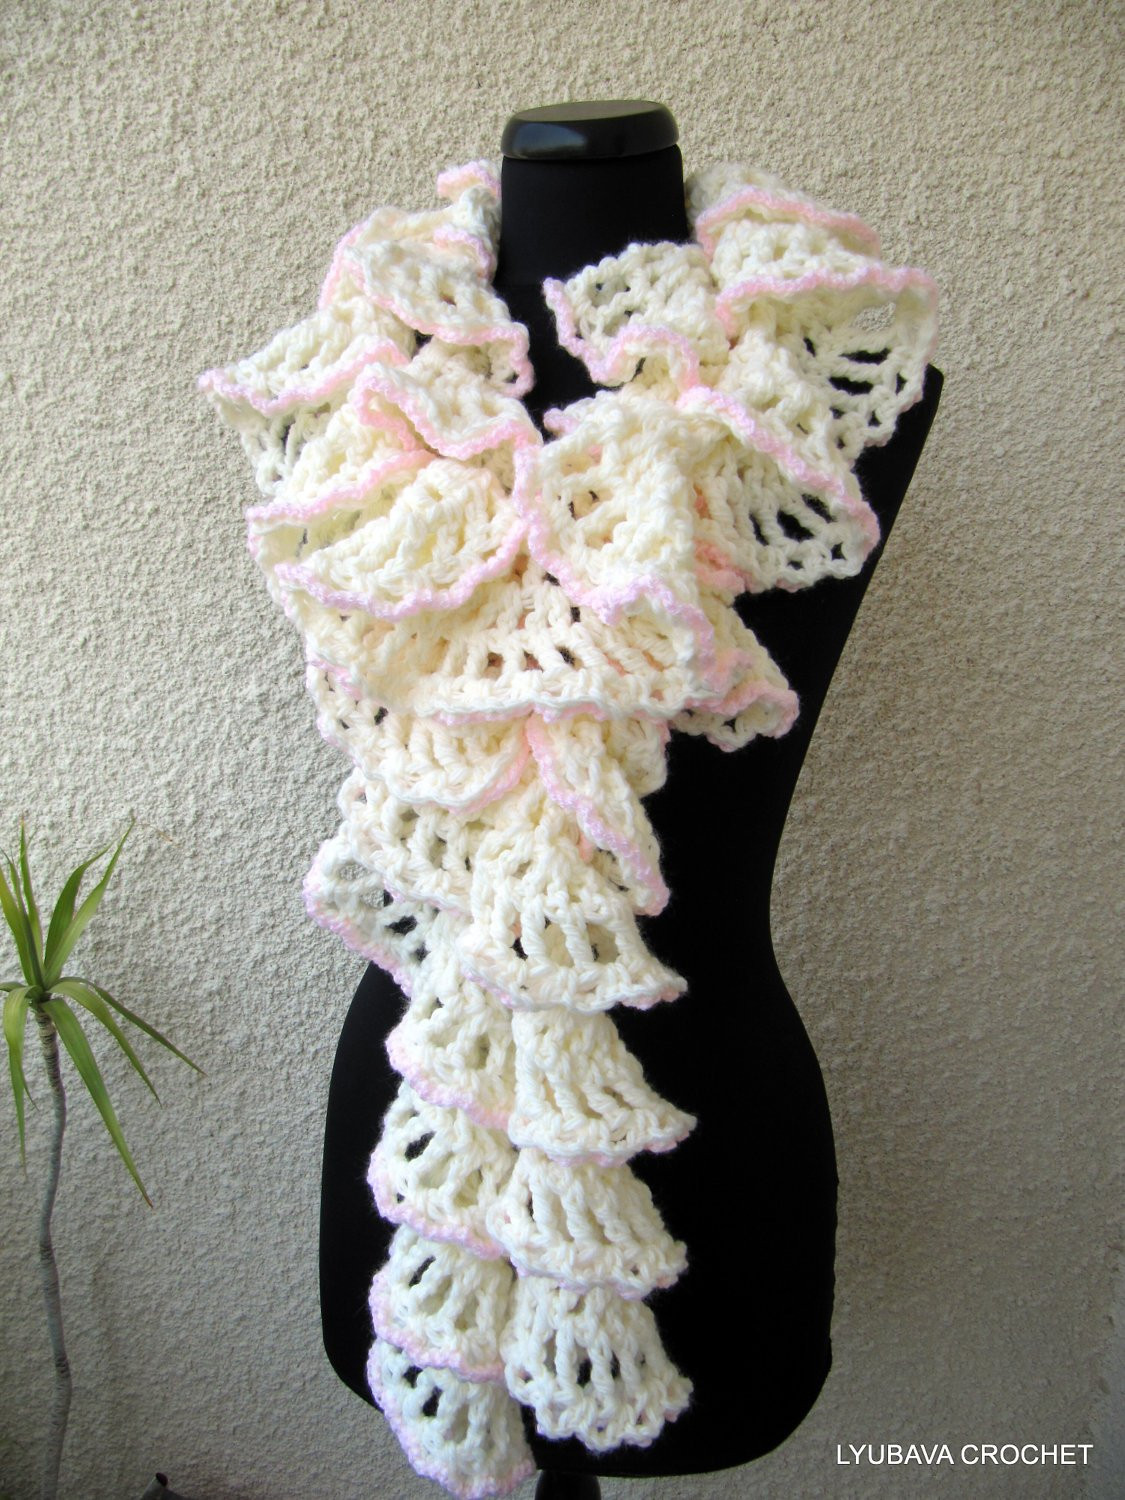 Unique Crochet Scarf Pattern Chunky Crochet Ruffle Scarf Winter Crochet Ruffle Scarf Of Inspirational Firehawke Hooks and Needles Free Pattern Ruffle Scarf Crochet Ruffle Scarf